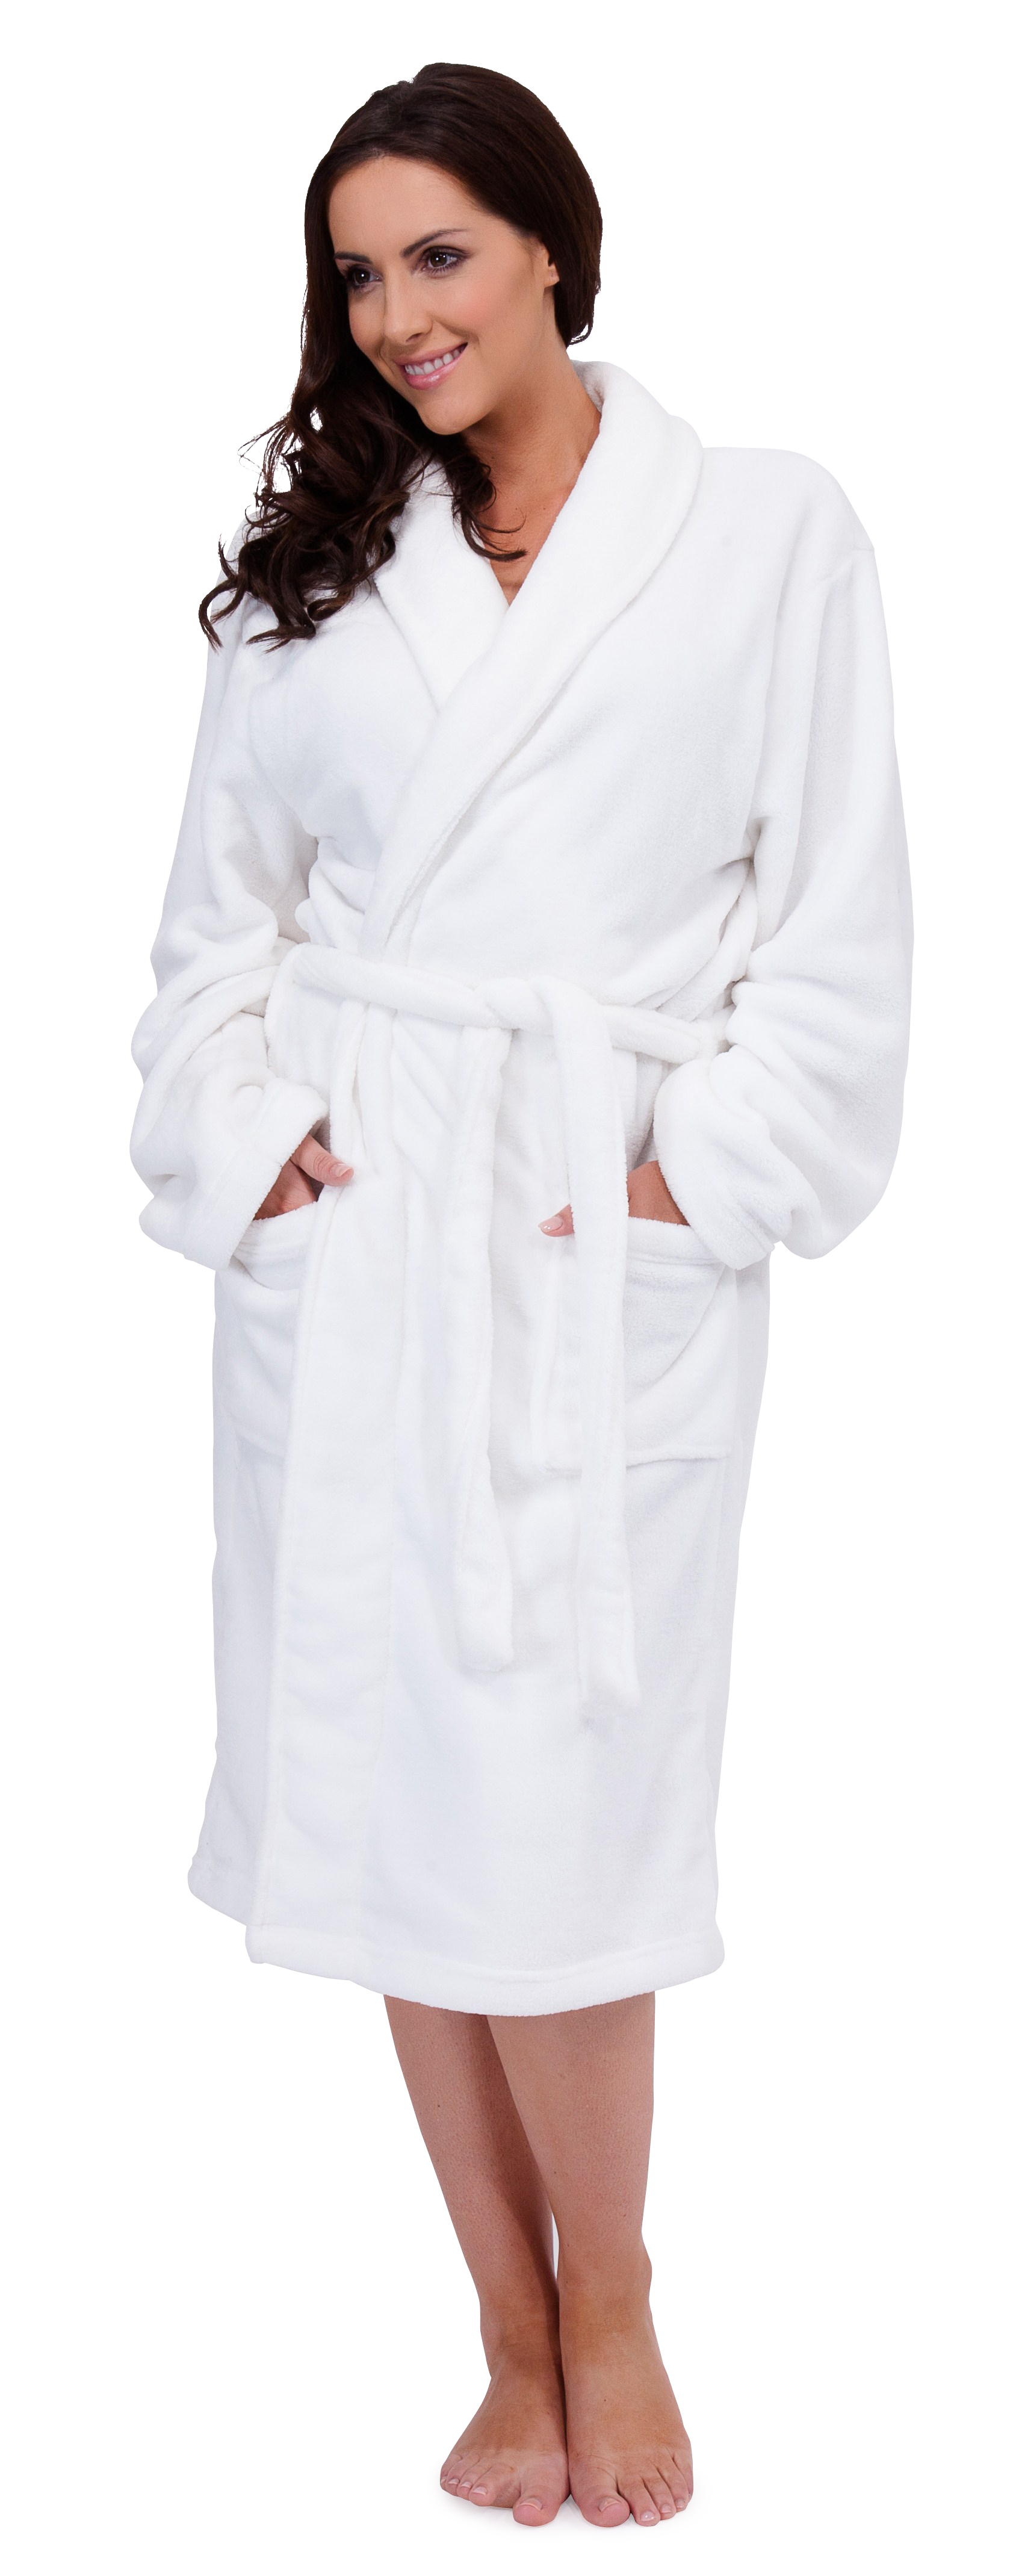 women's dressing gowns Get wrapped up in a cosy dressing gown. Whether you're looking for a full-length zip-up housecoat, a warm fleece wrap-around or a lightweight summer gown we have a great selection available in sizes 10 - 24, and in a wide range of colours and styles.